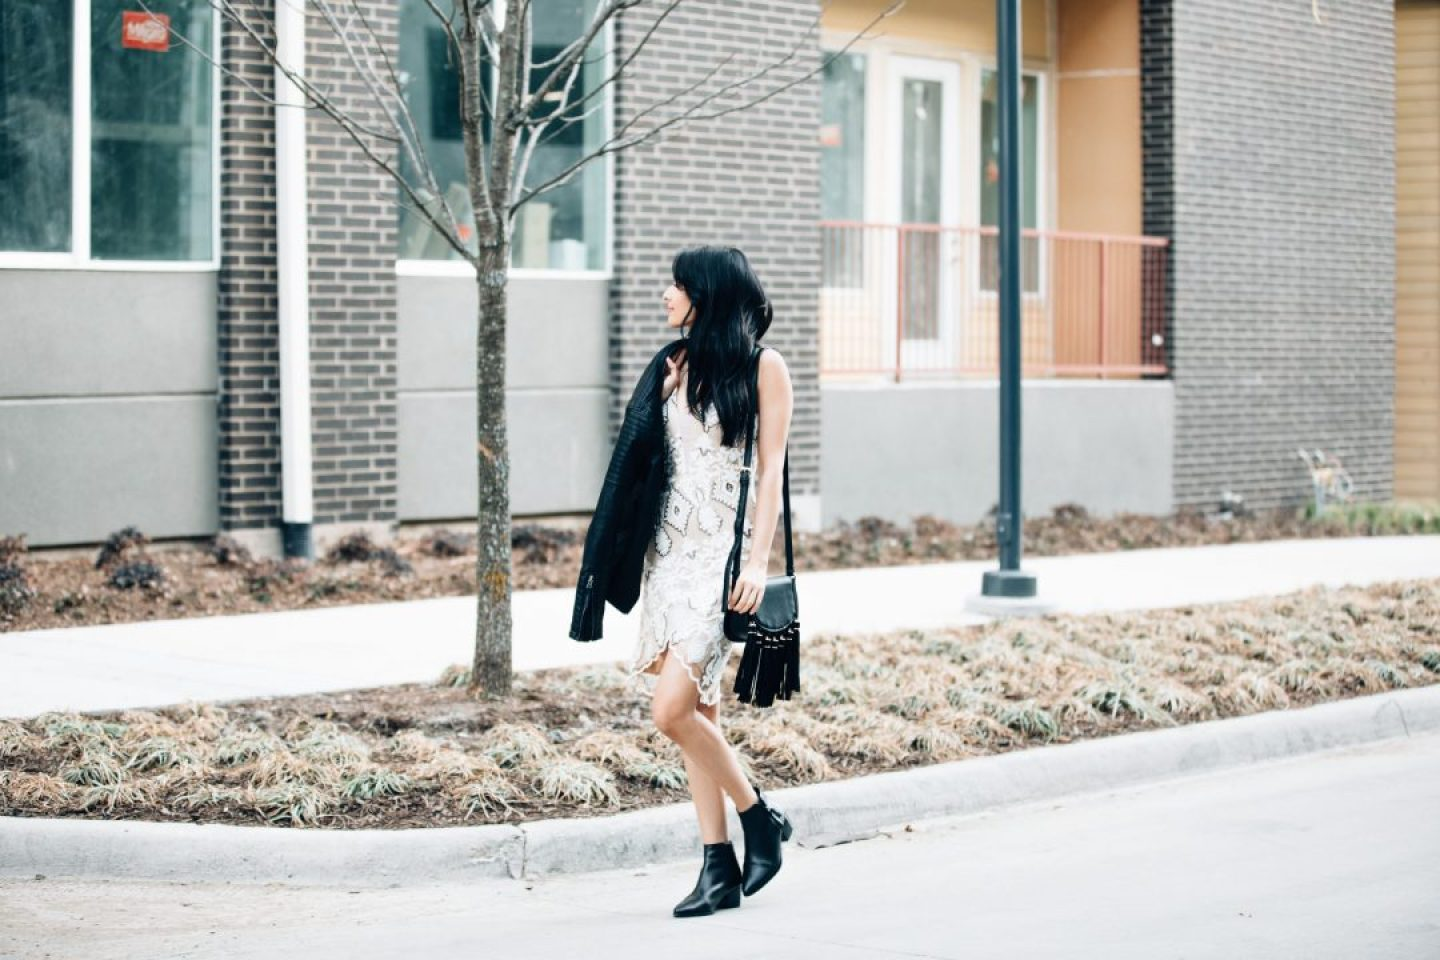 Blogger Nita Mann from Next With Nita shares her animal-friendly faux leather jacket and bag!